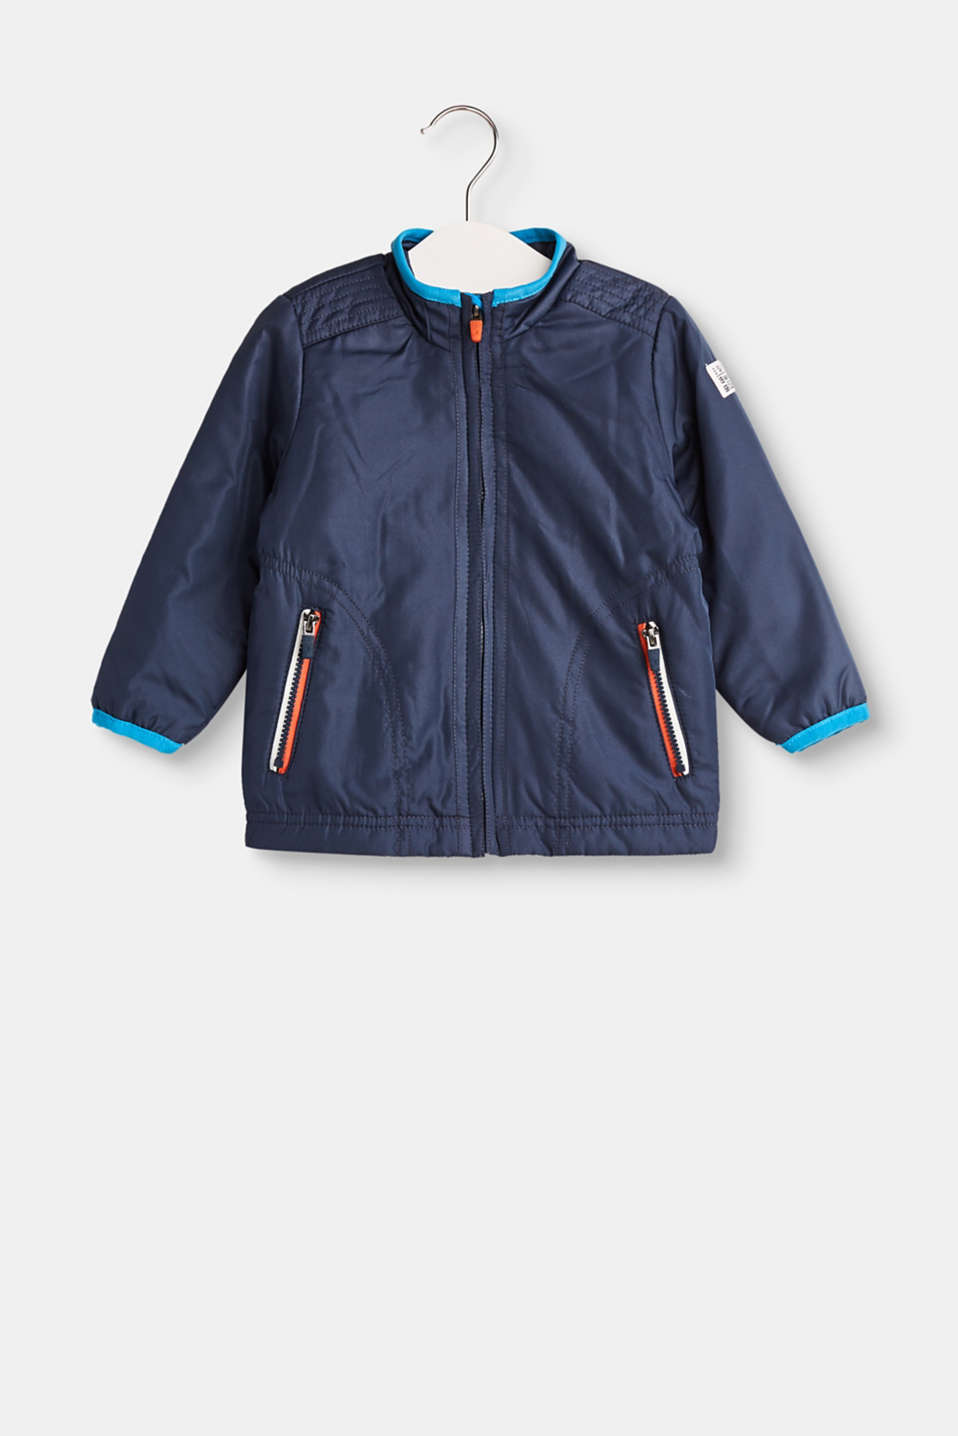 This lightly padded jacket in a shimmering nylon and cotton jersey lining is lightweight and sporty!